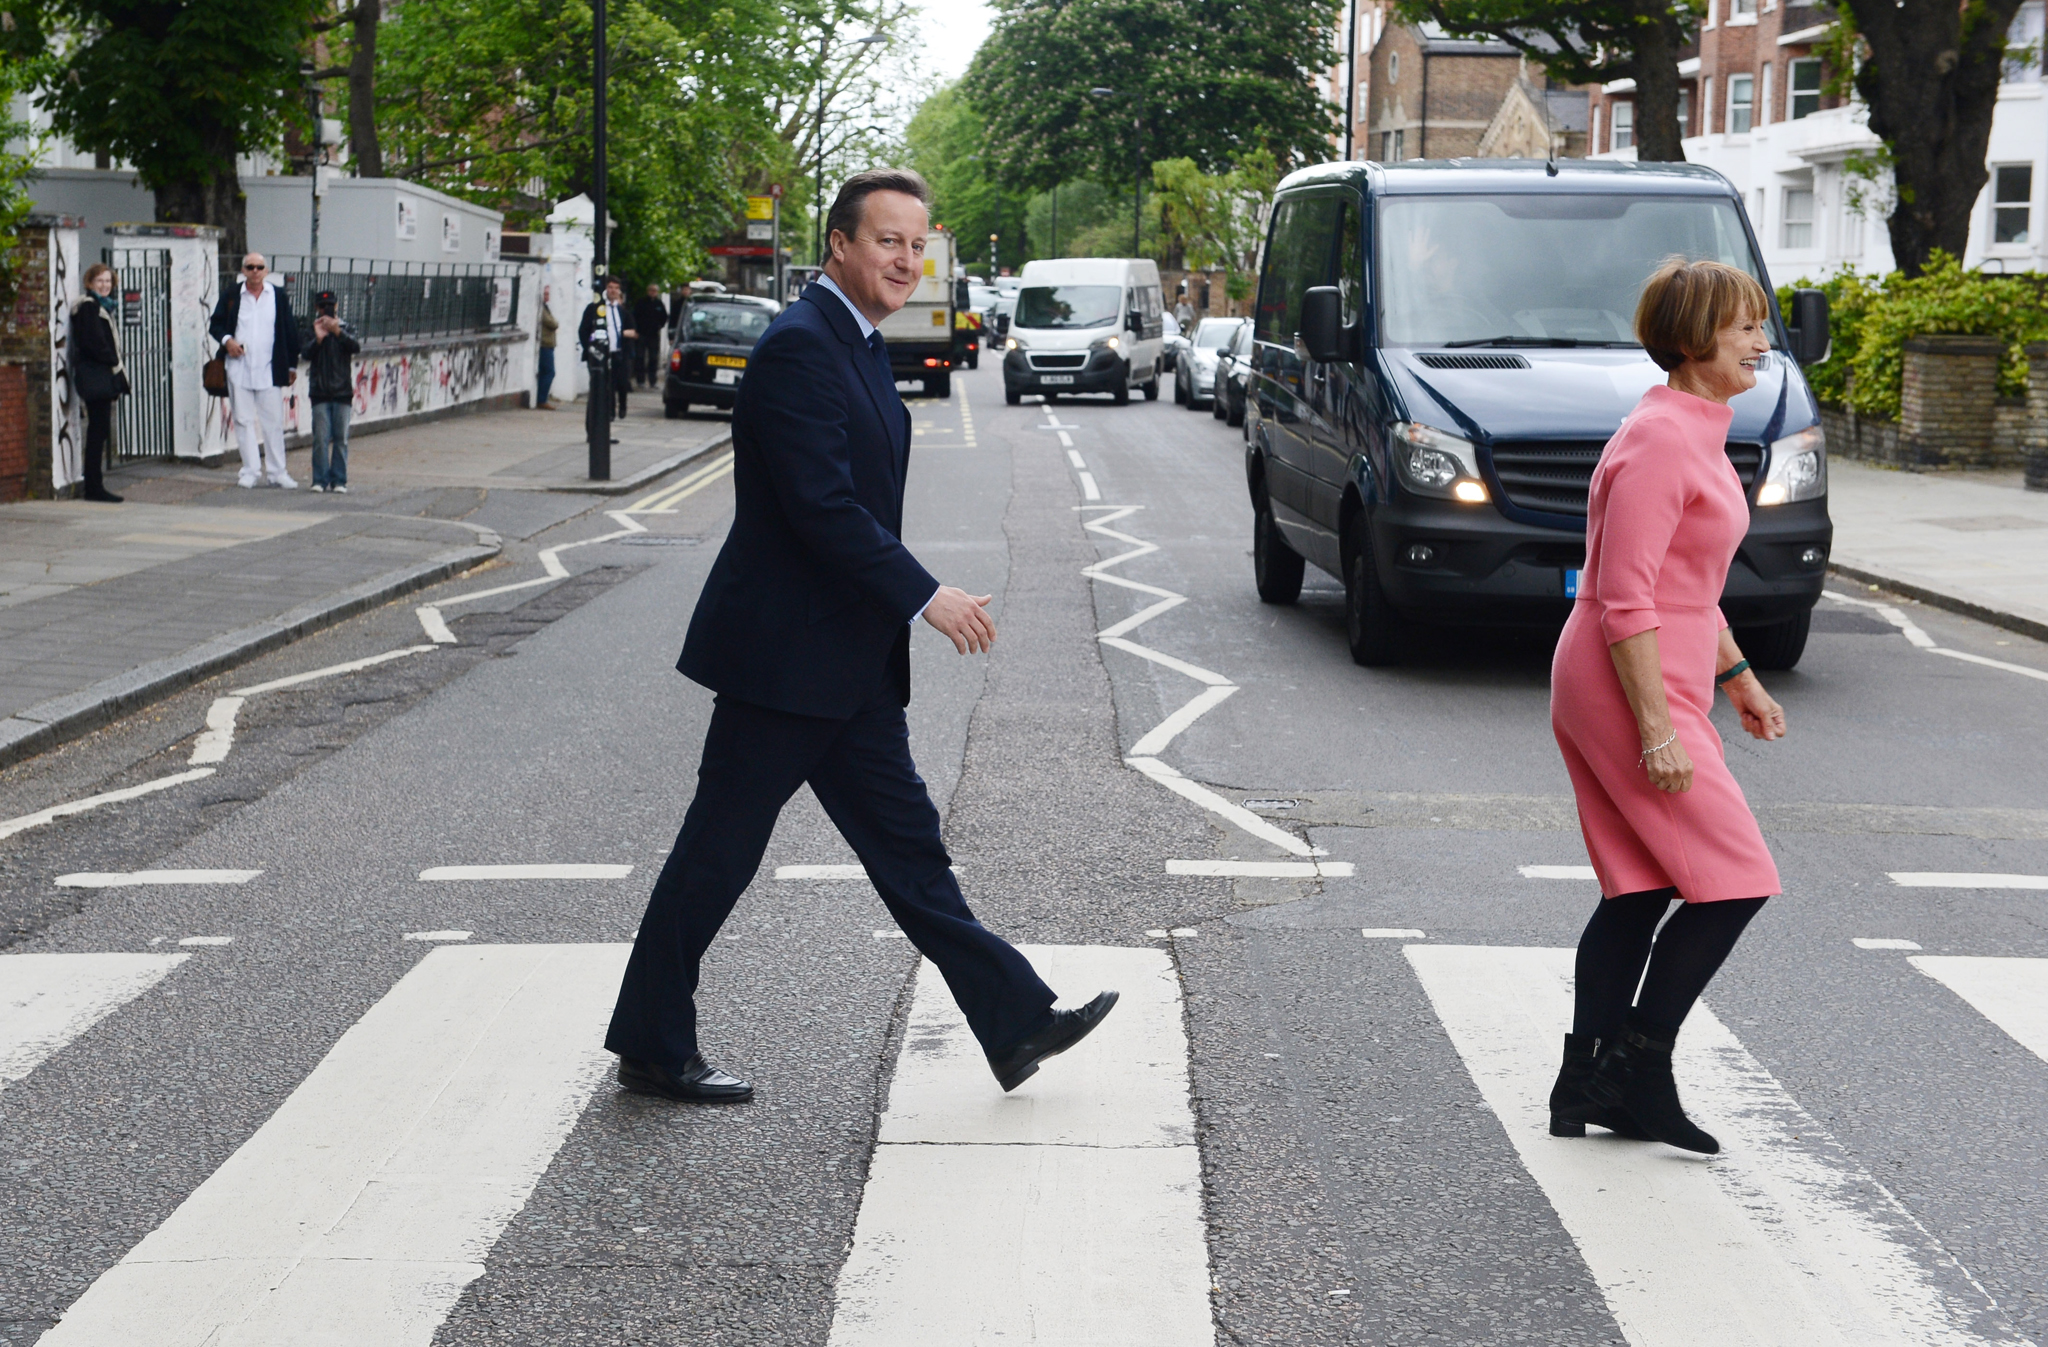 Prime Minister David Cameron recreates the famous Beatles Abbey Road album cover by walking across Abbey Road crossing with Tessa Jowell, former secretary of state for culture, media and sport, on May 20, 2016 in London, England